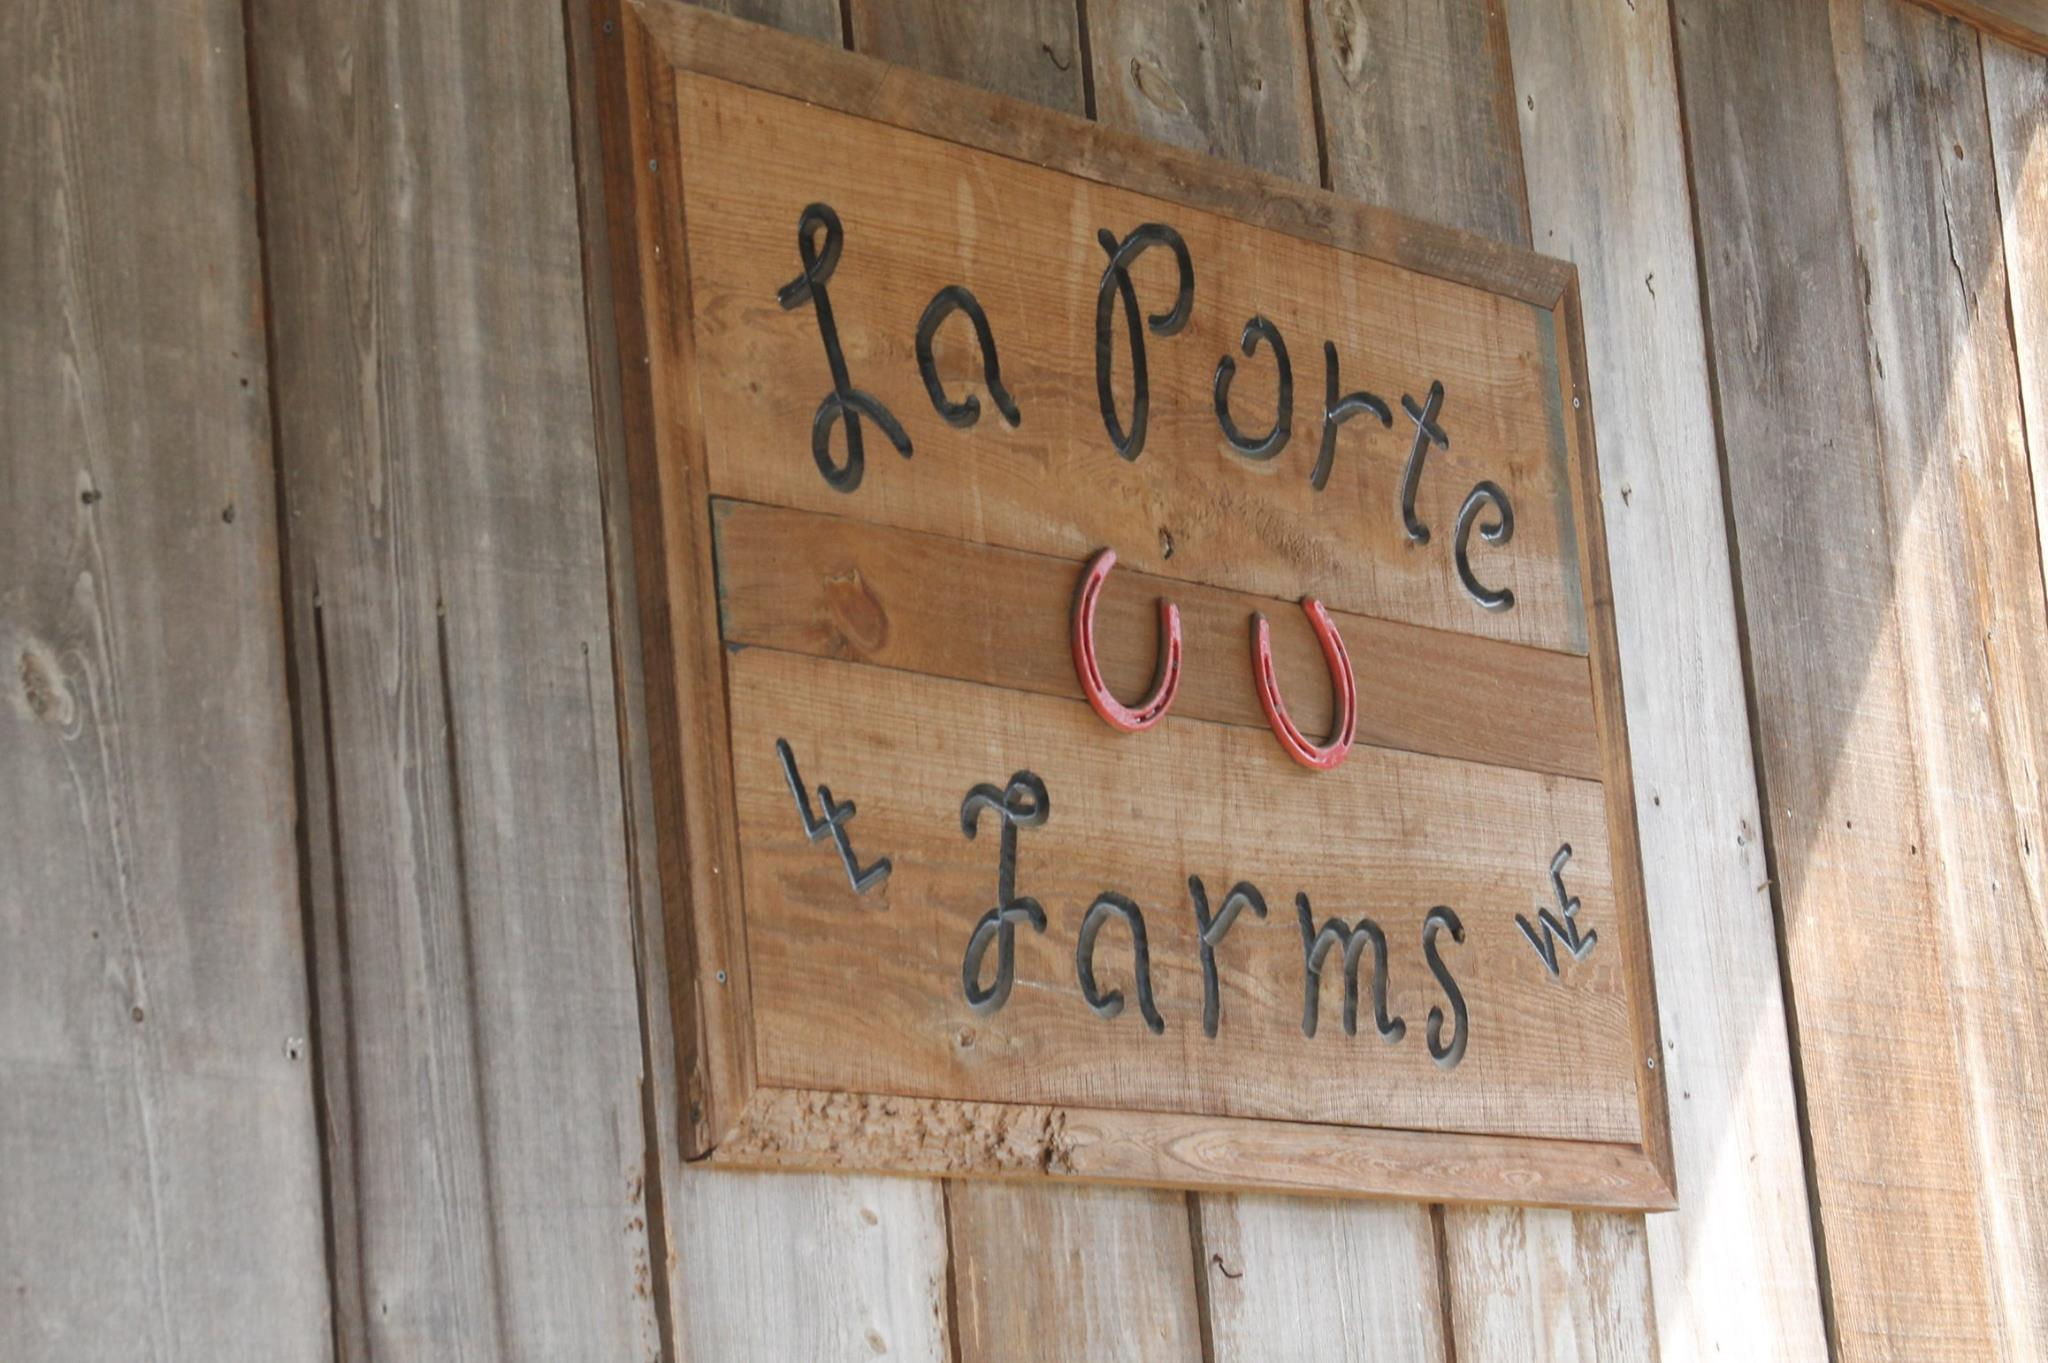 LaPorte Farms